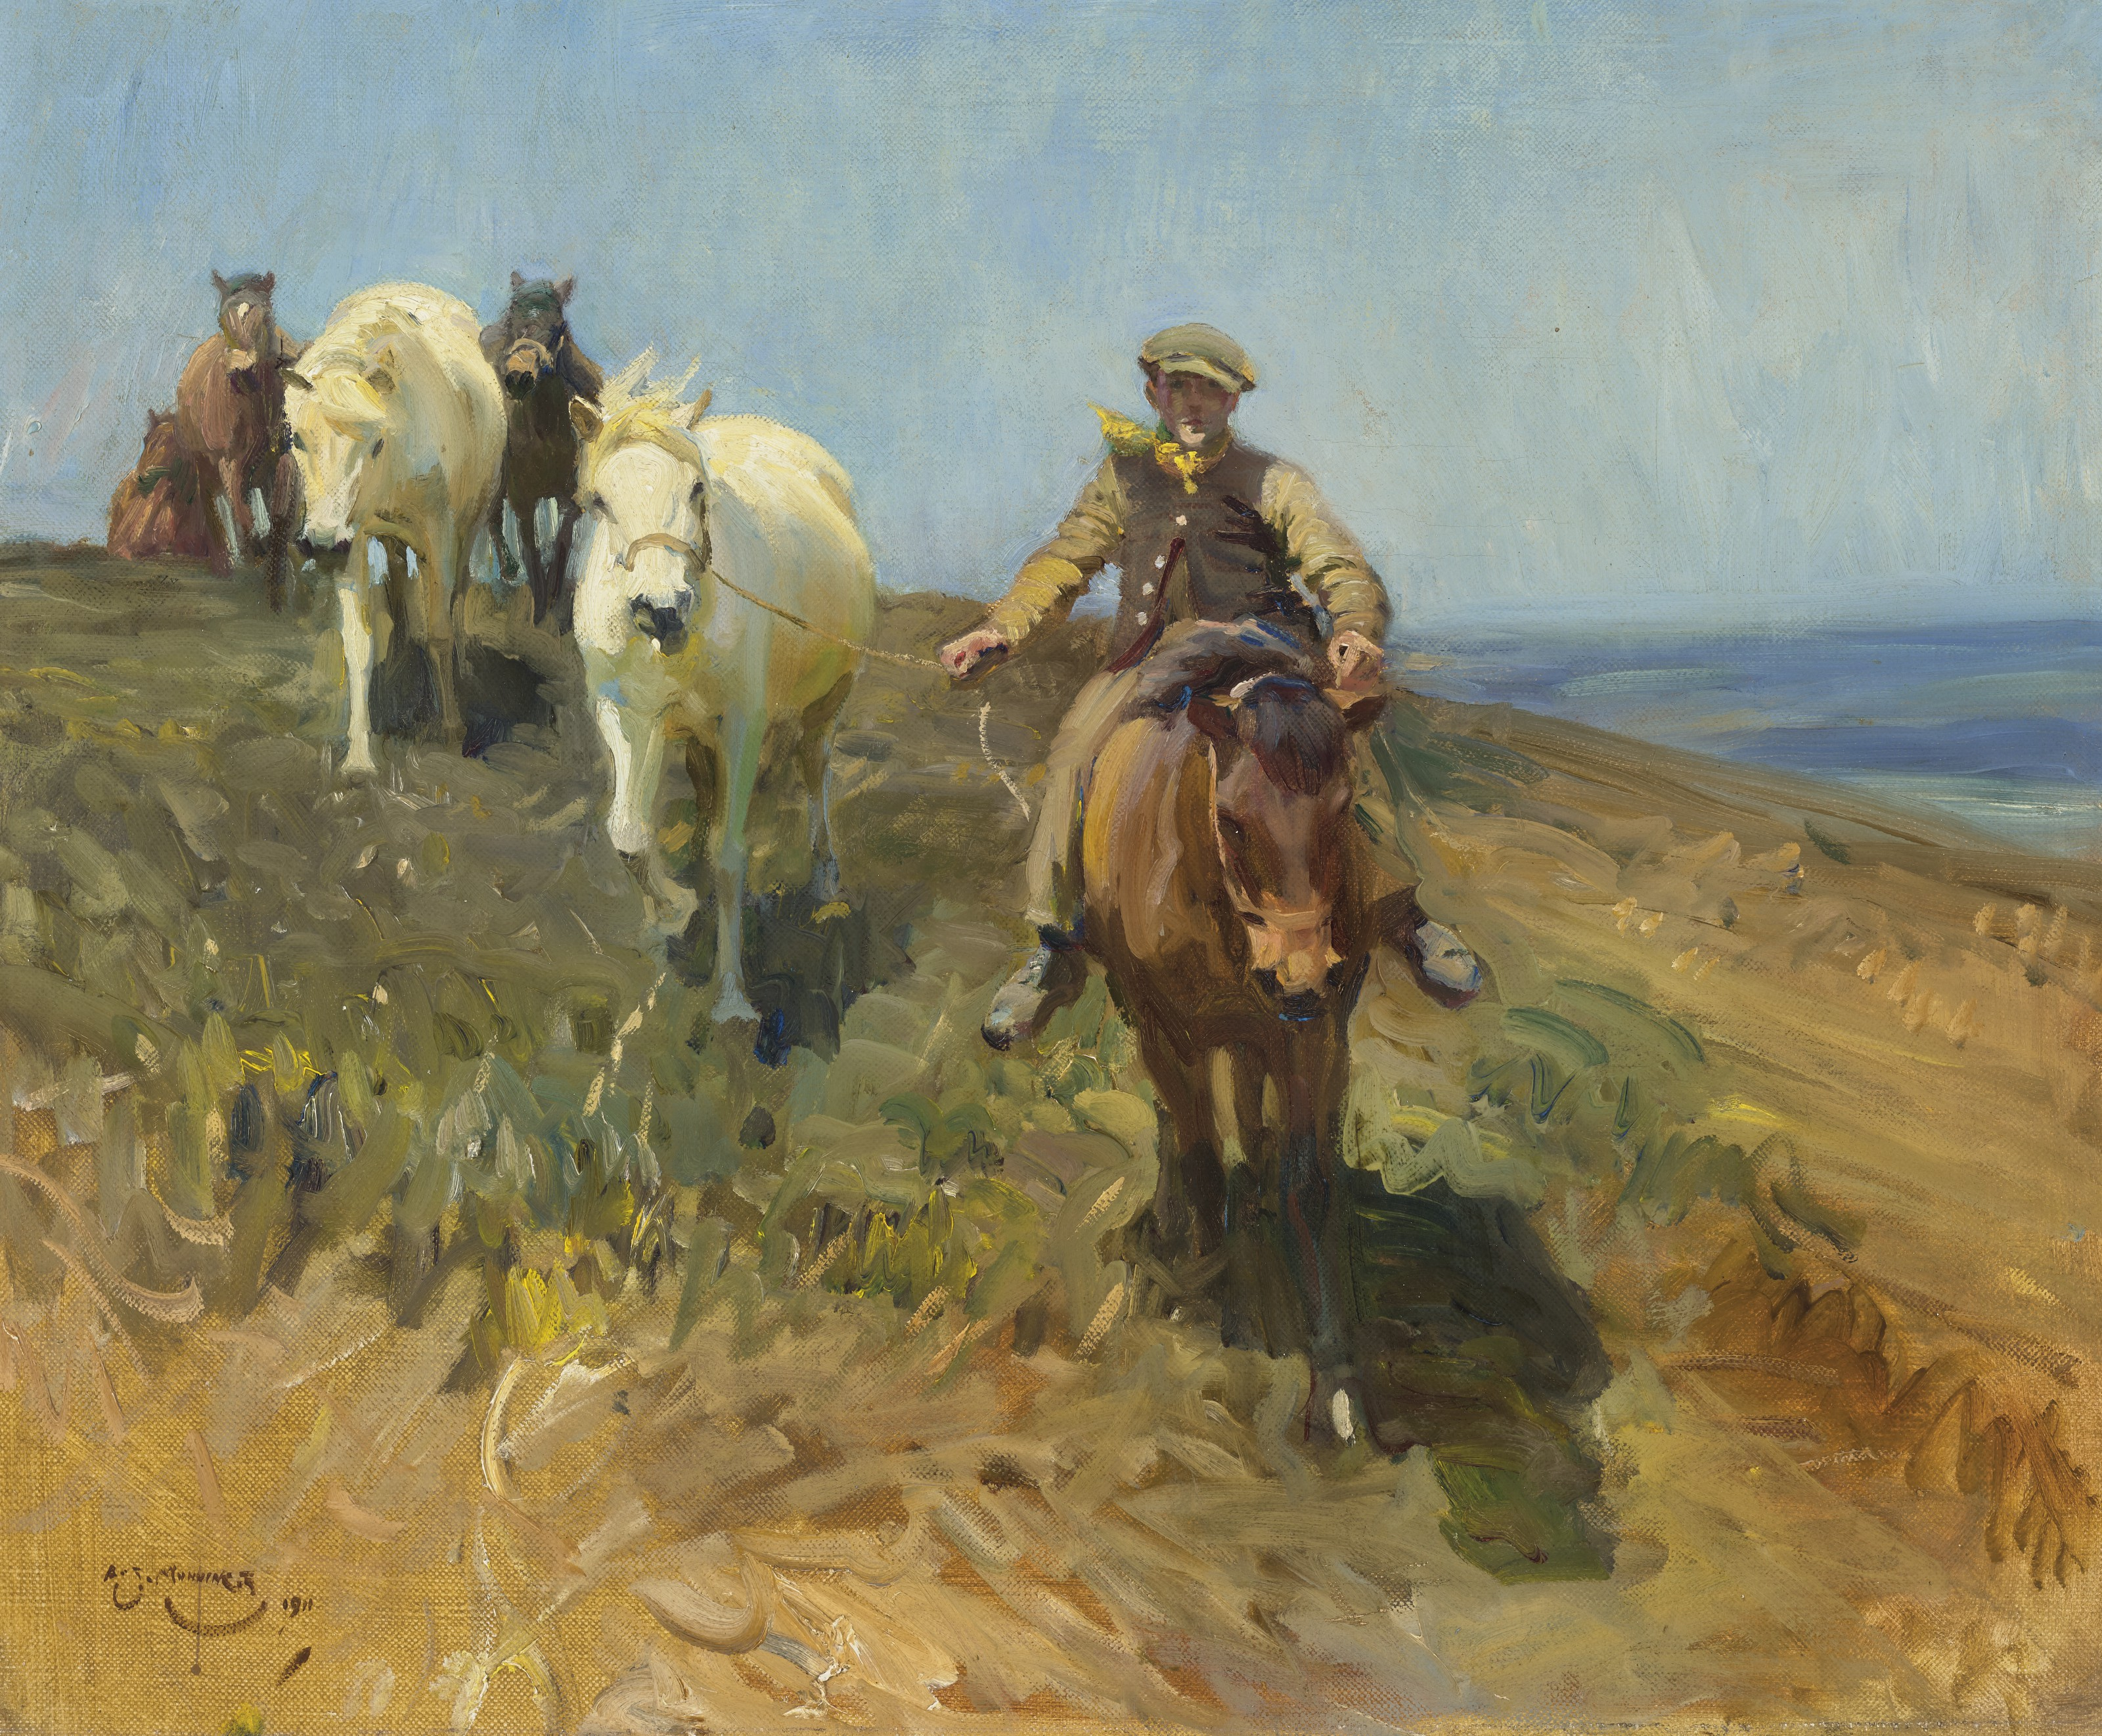 Sir Alfred James Munnings, P.R.A., R.W.S. (British, 1878-1959), Shrimp leading ponies across the Ringland Hills, Norfolk. OIl on canvas. 25 x 30  in (63.5 x 76.2  cm). Estimate $300,000-500,000. Offered in European Art Part I on 13 October 2021 at Christie's in New York